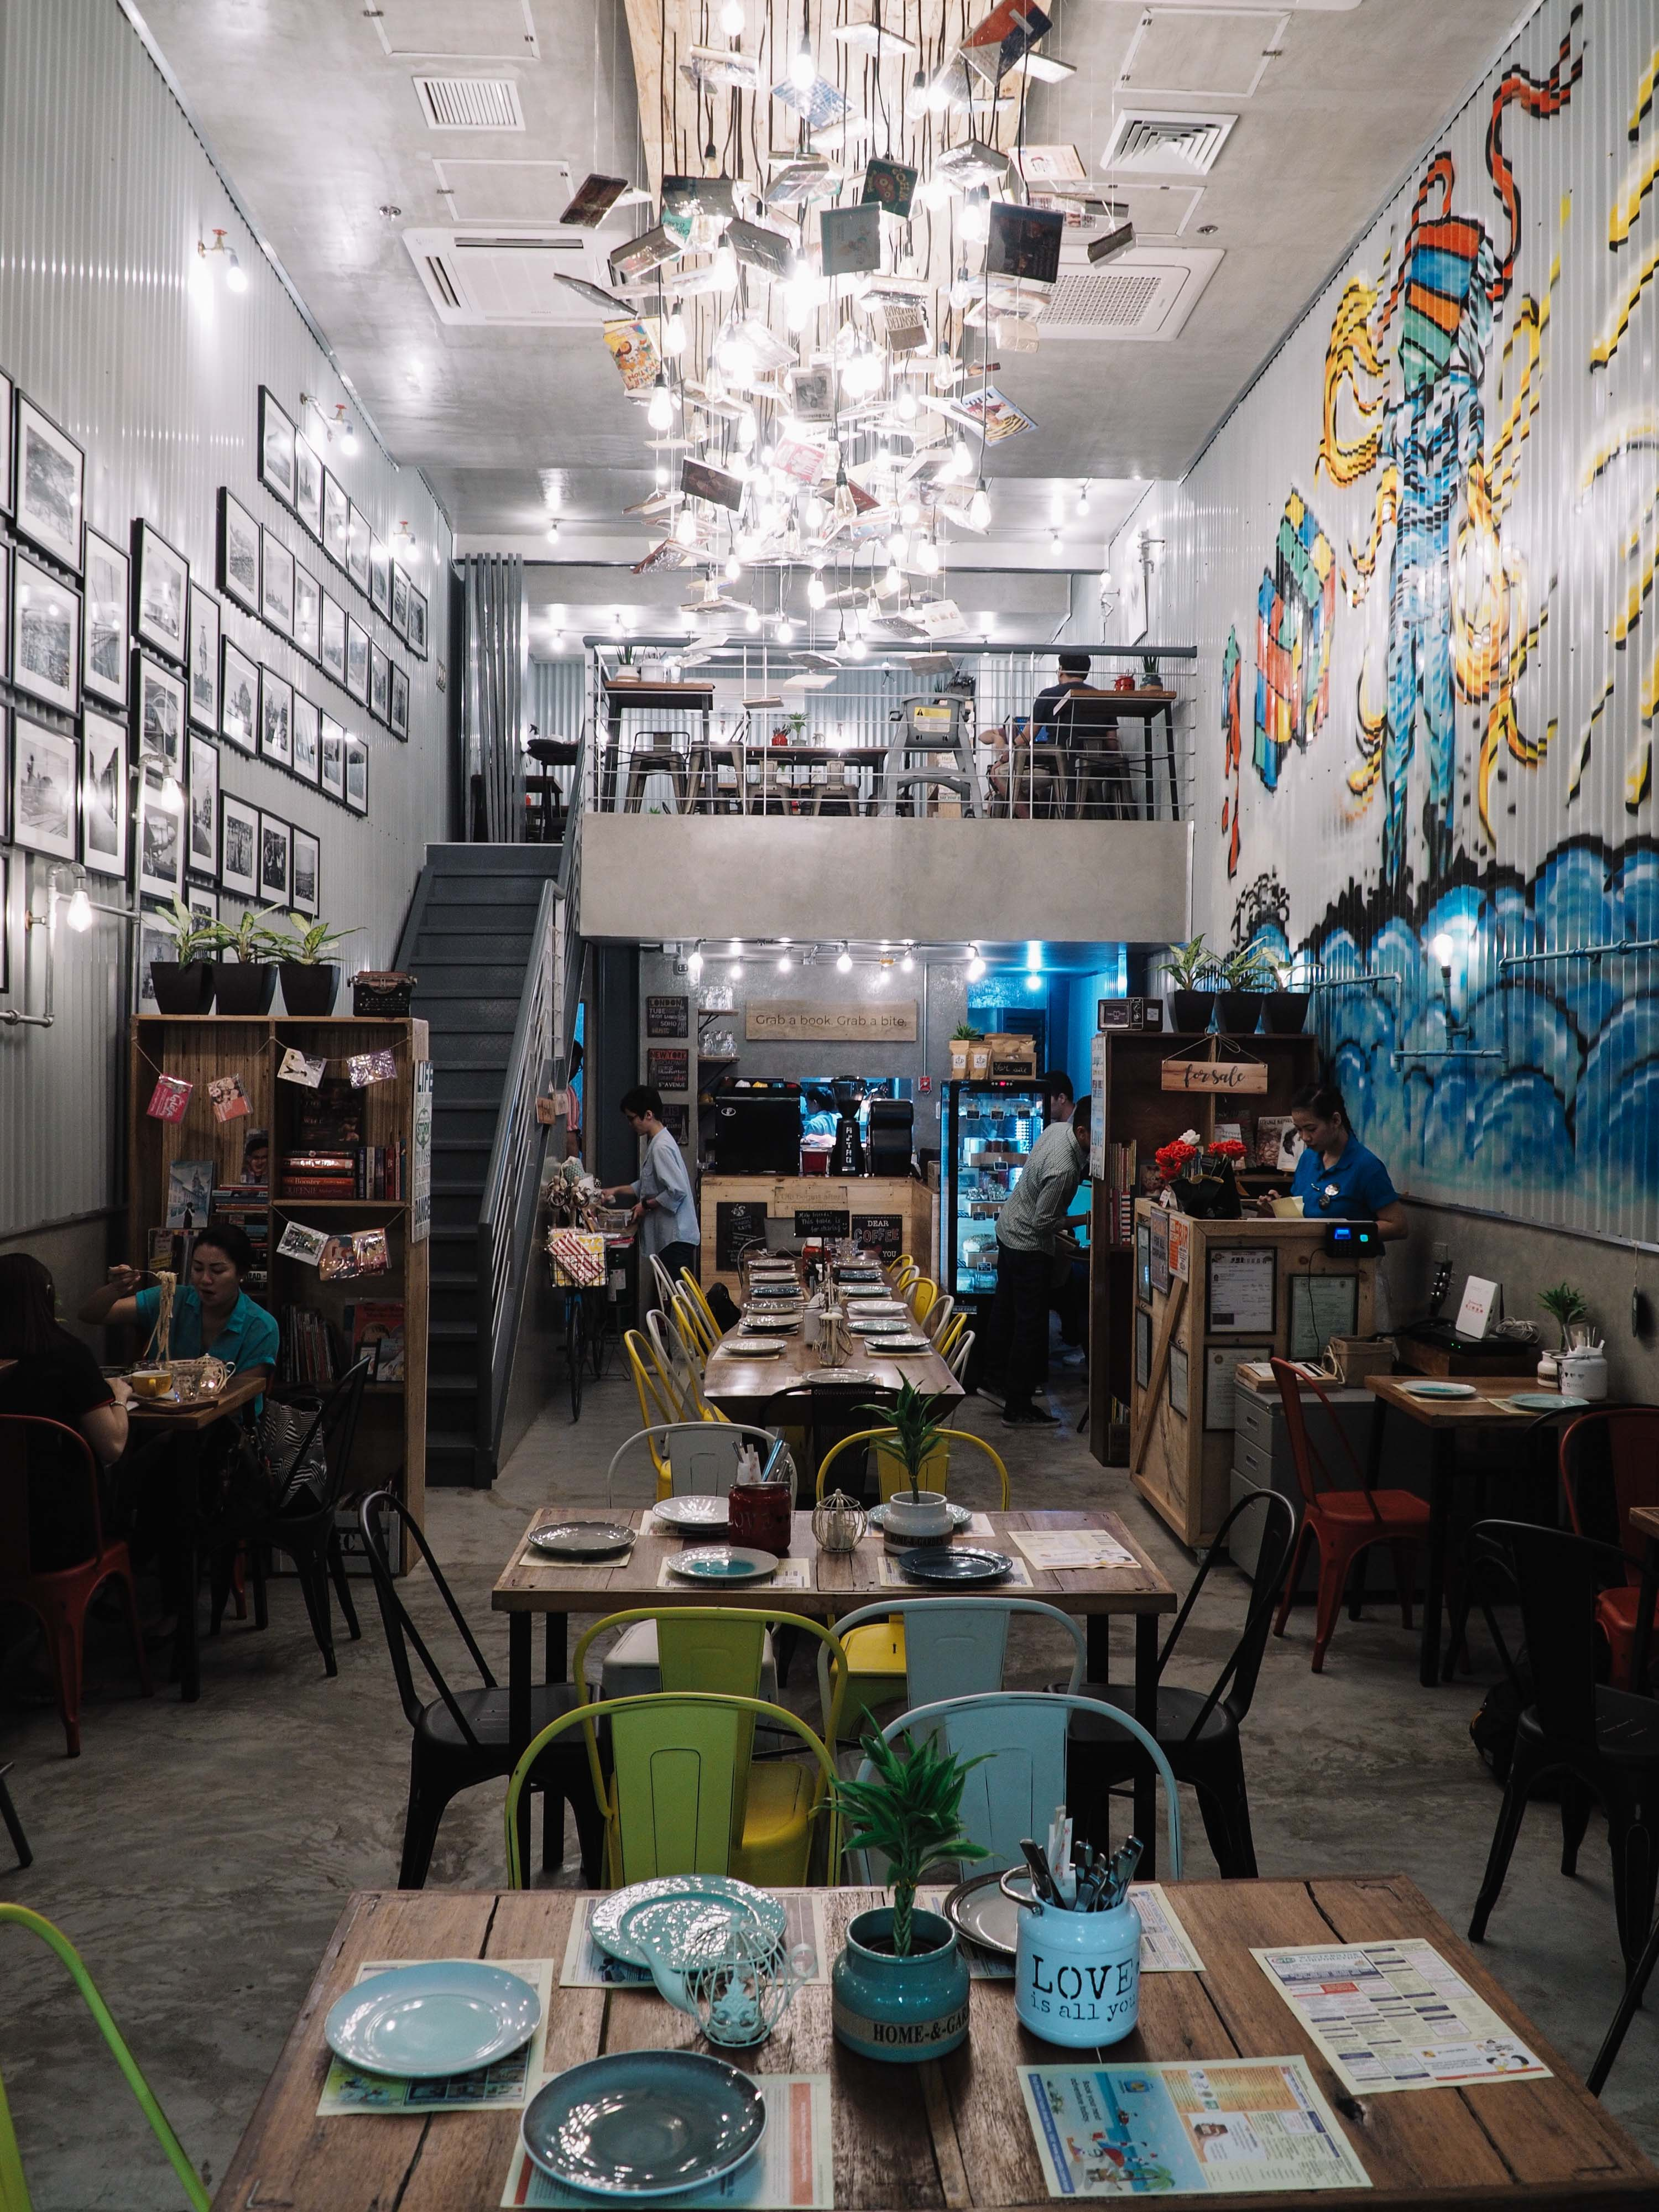 Buku-Buku Kafe's walls are similar to that of a trailer truck with graffiti and photographs hung on them.